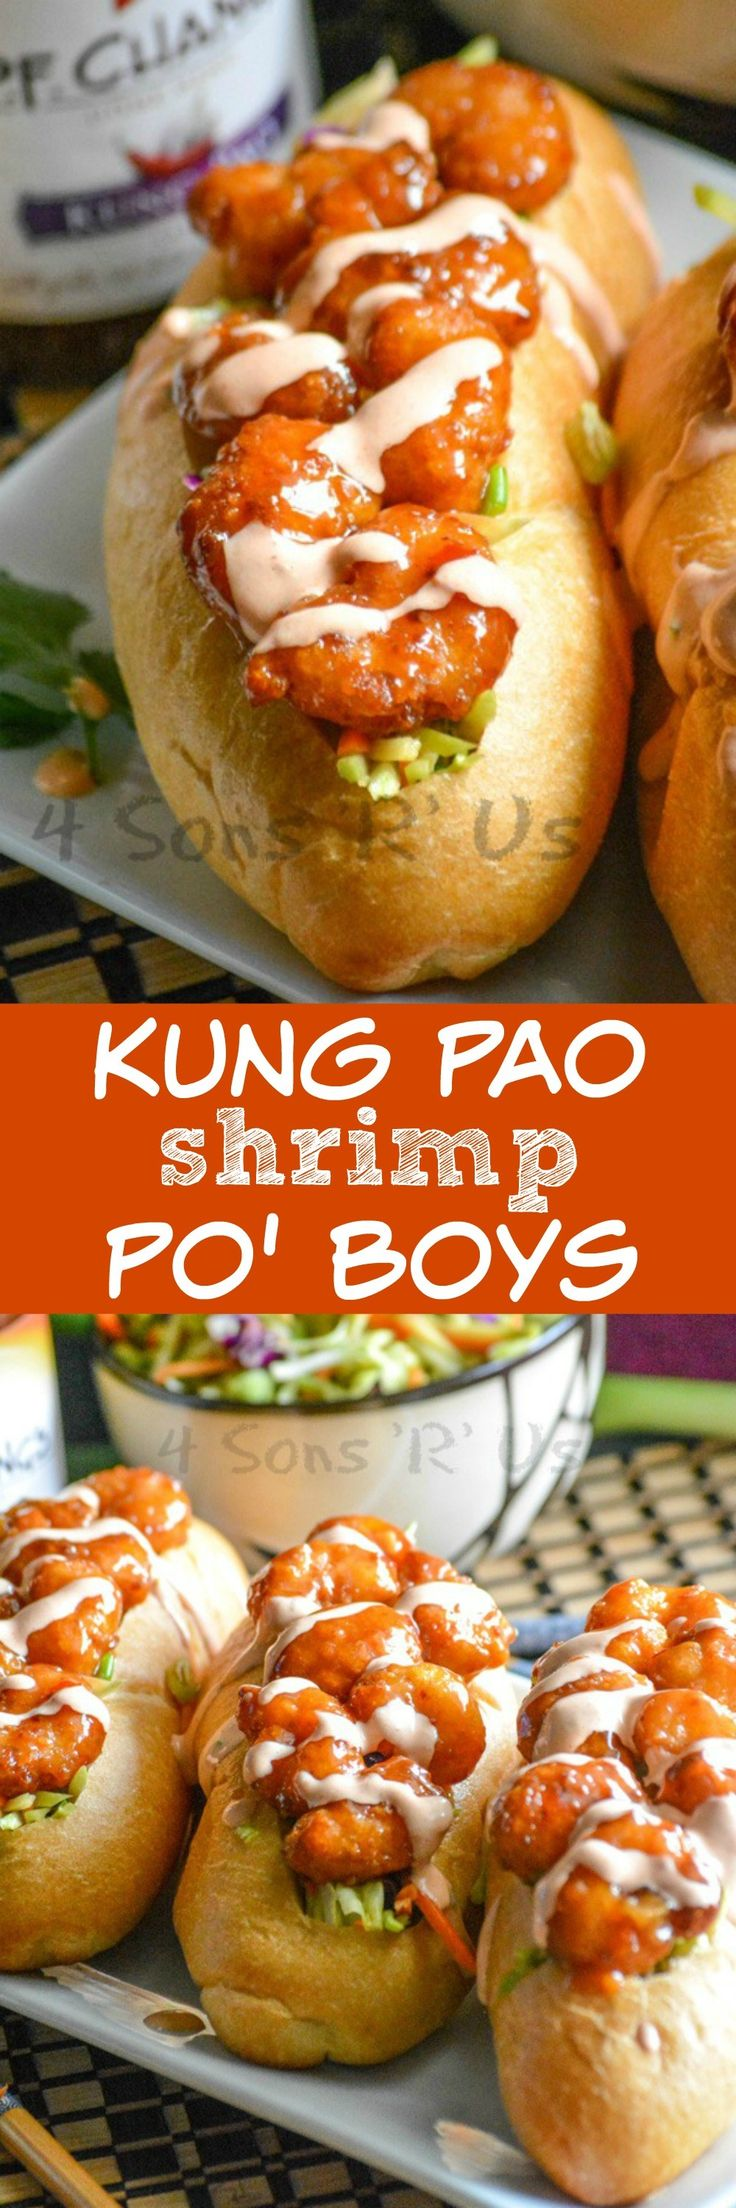 Crusty baguettes are stuffed with a tangy Asian slaw, topped with saucy Kung Pao shrimp, and drizzled with a sweet chili aoili. These Kung Pao Shrimp Po' Boys are a tasty spin on the classic Southern sandwich recipe. #SimpleSecret #ad @walmart Enter here for a chance to WIN a FREE trip to AZ >>> http://cbi.as/7wg-j